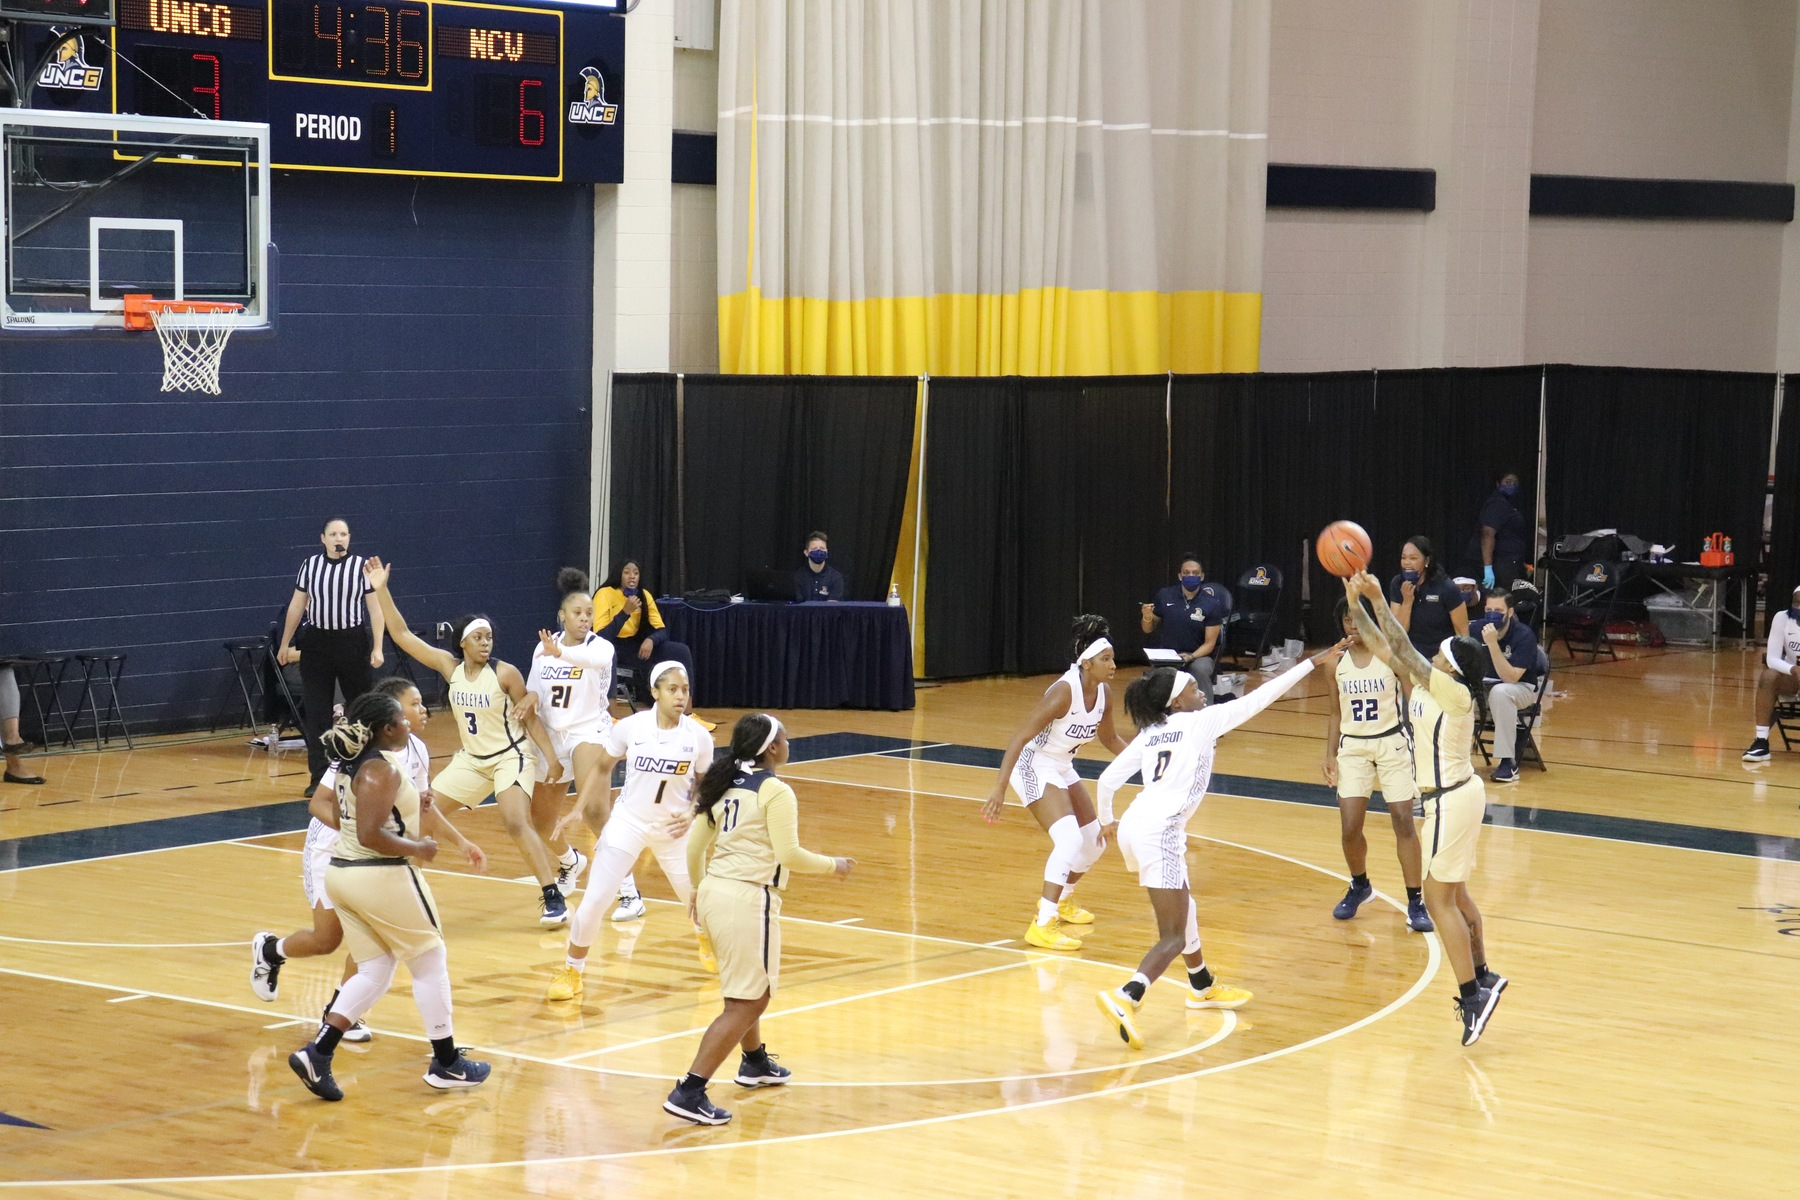 Kayla Johnson shooting...courtesy of Mike Armbruster